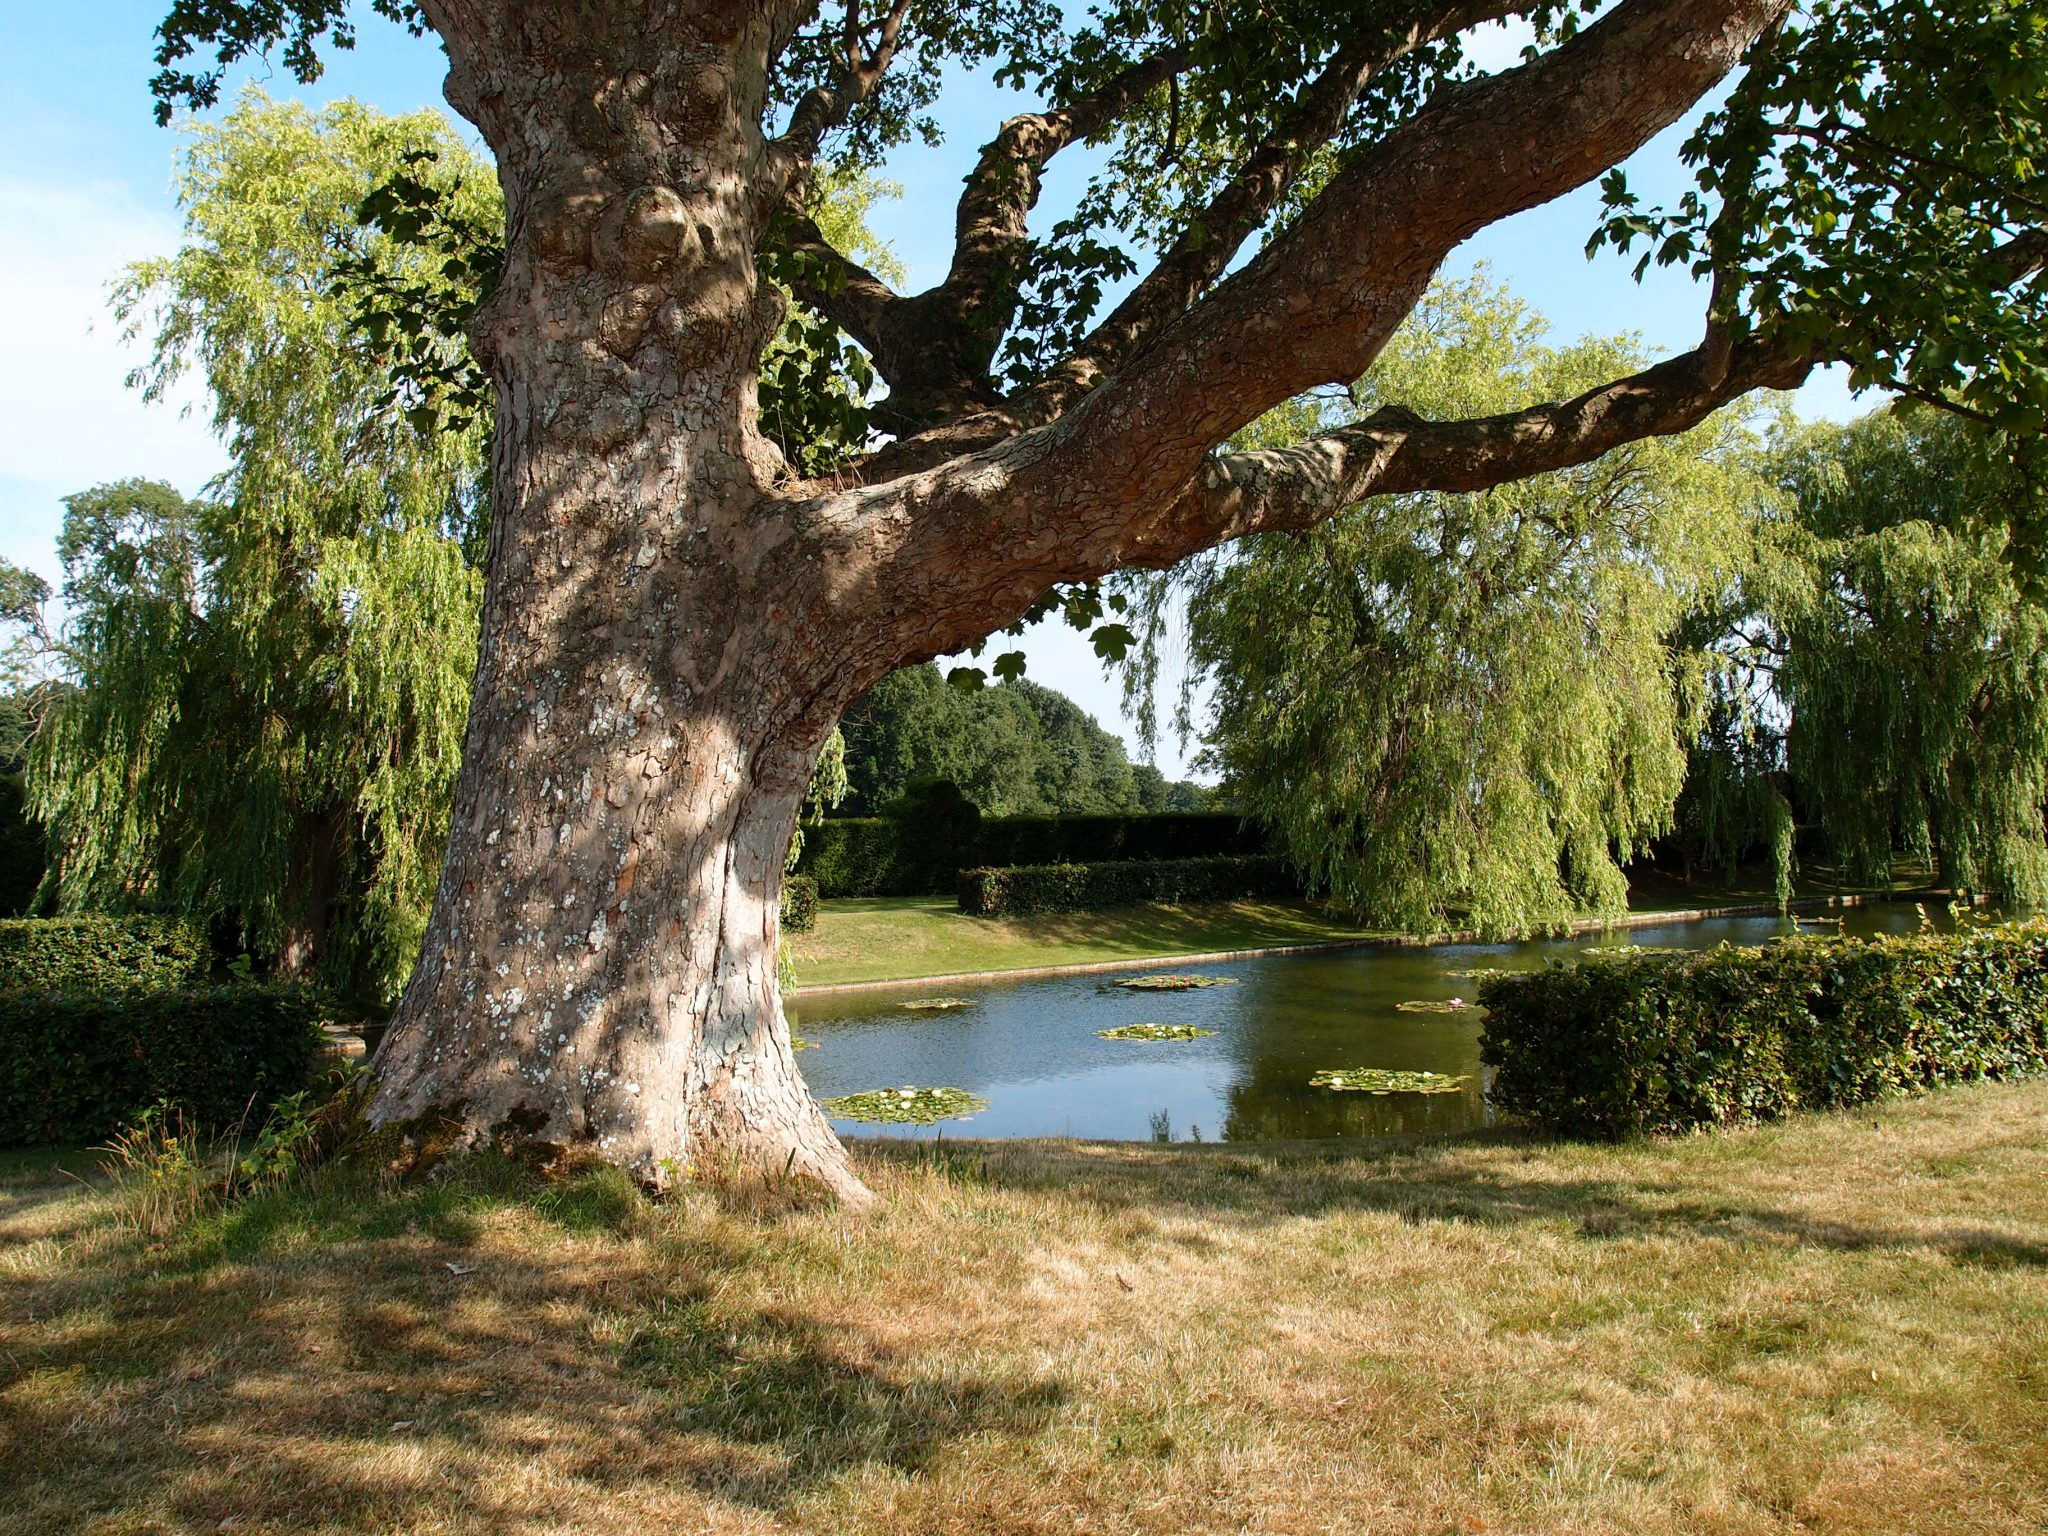 An ancient sycamore tree, by the Lily Pond